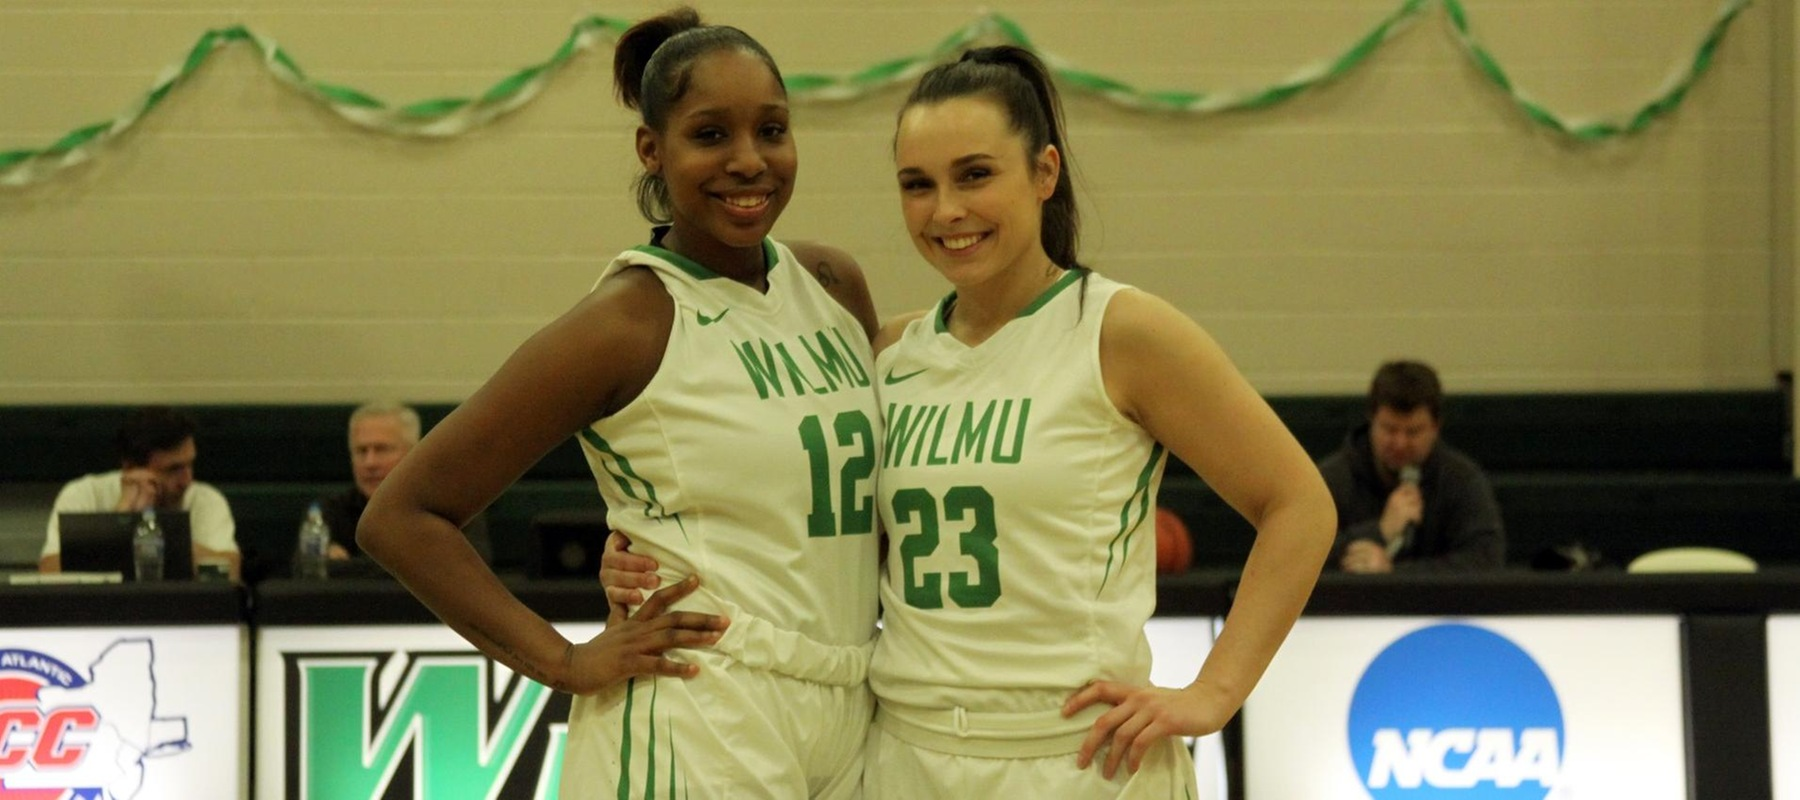 Copyright 2019; Wilmington University. All rights reserved. Photo of Nyree Grant and Macy Robinson on Senior Night. Photo by Samantha Kelley. February 27, 2019 vs. Holy Family.